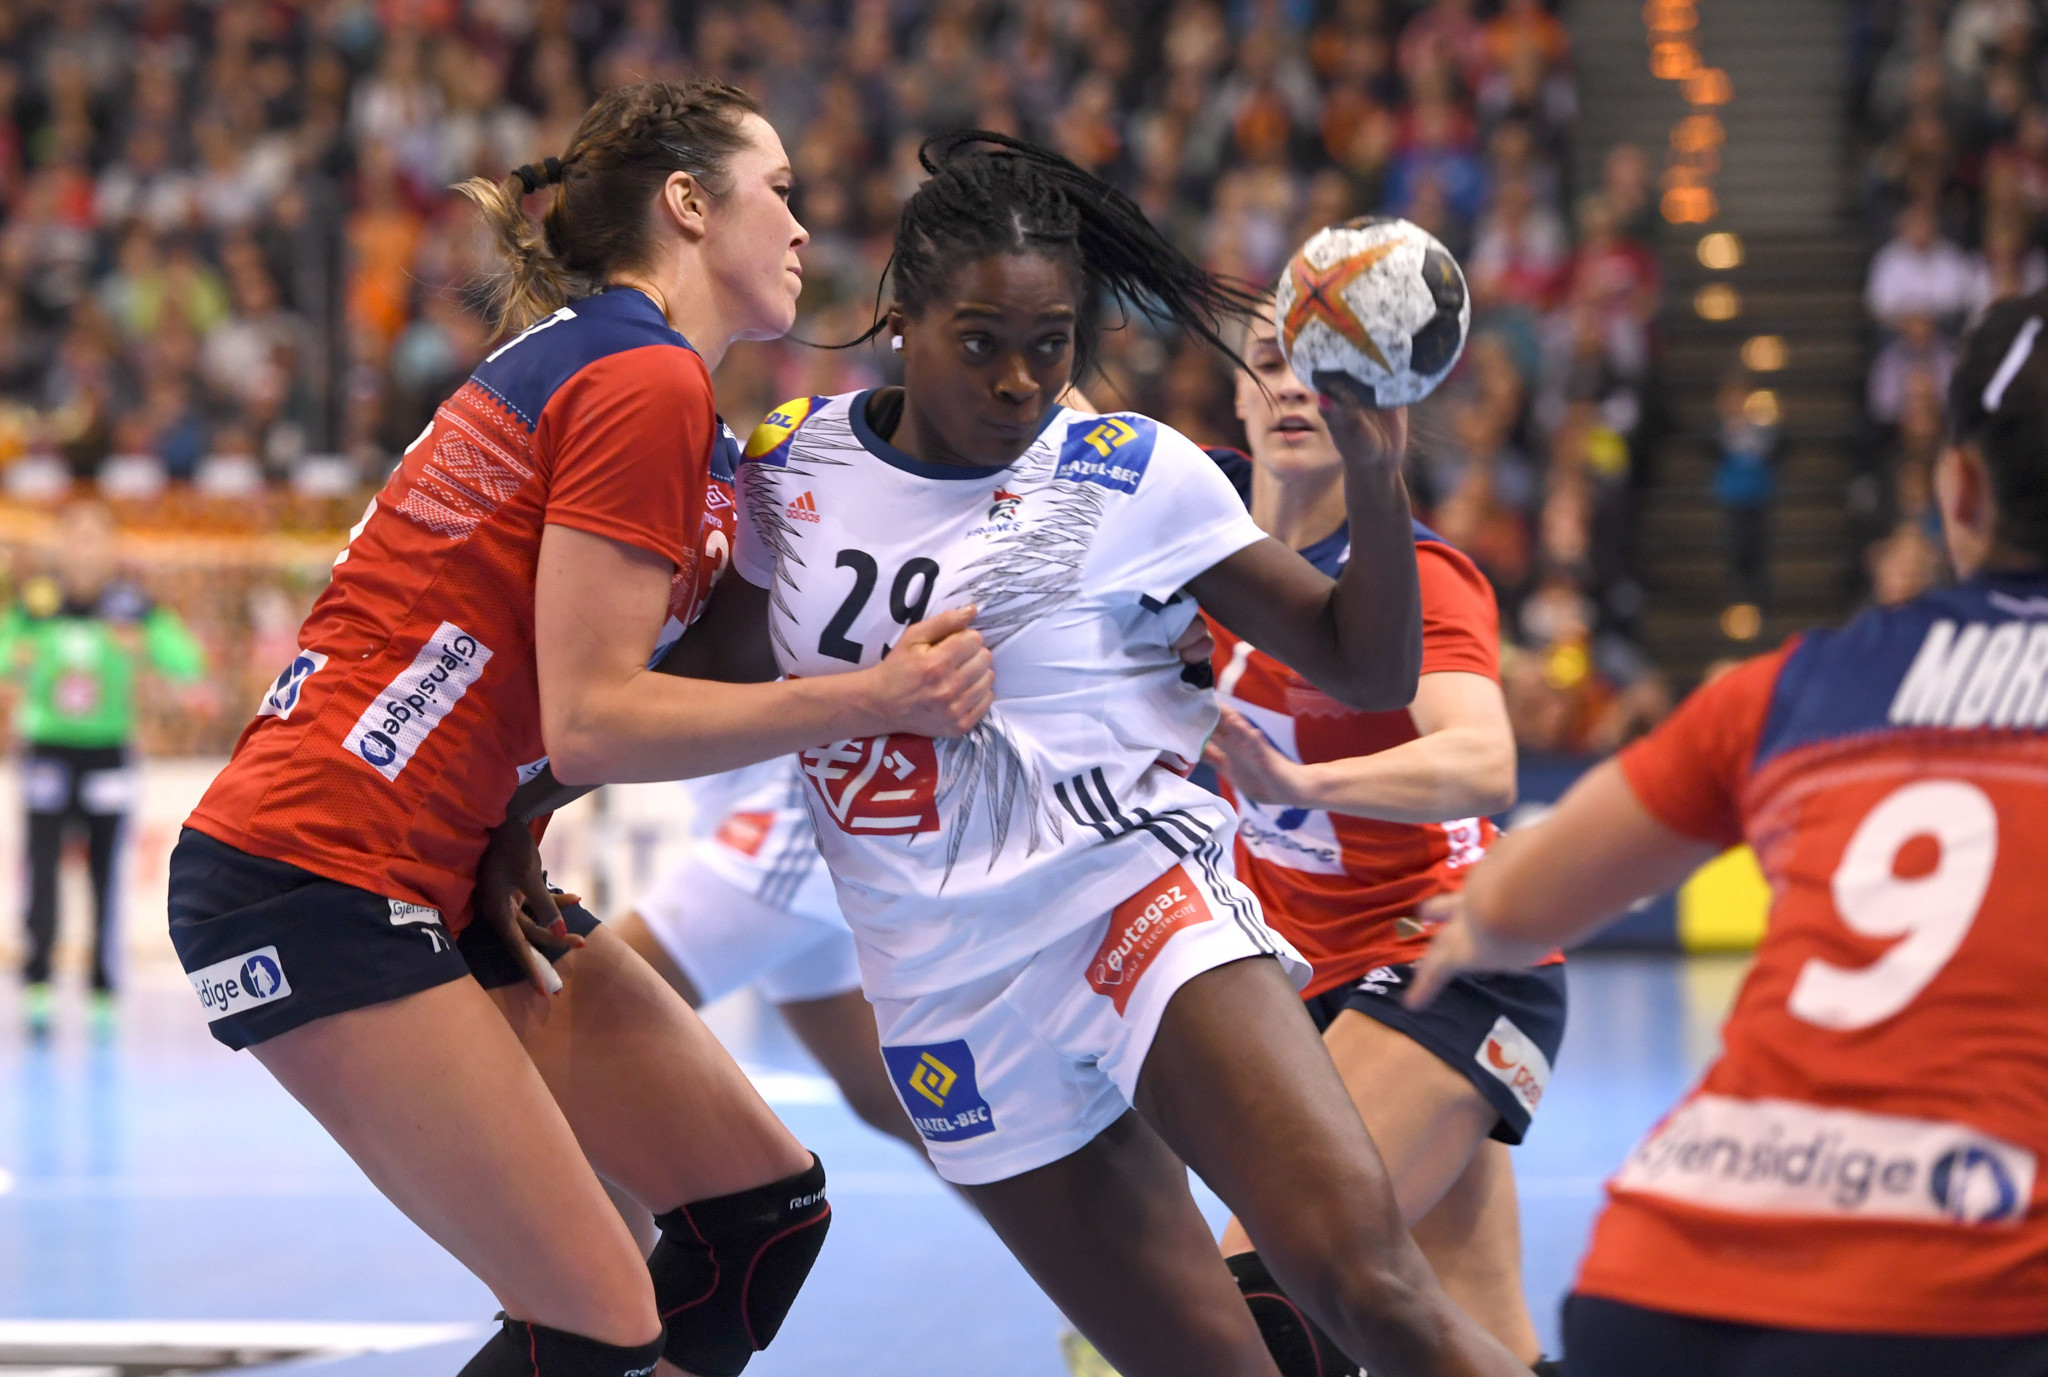 An expansion of teams competing will apply to World Championships for seniors, juniors and youths in both genders, starting from 2021, the International Handball Federation has decided ©Getty Images